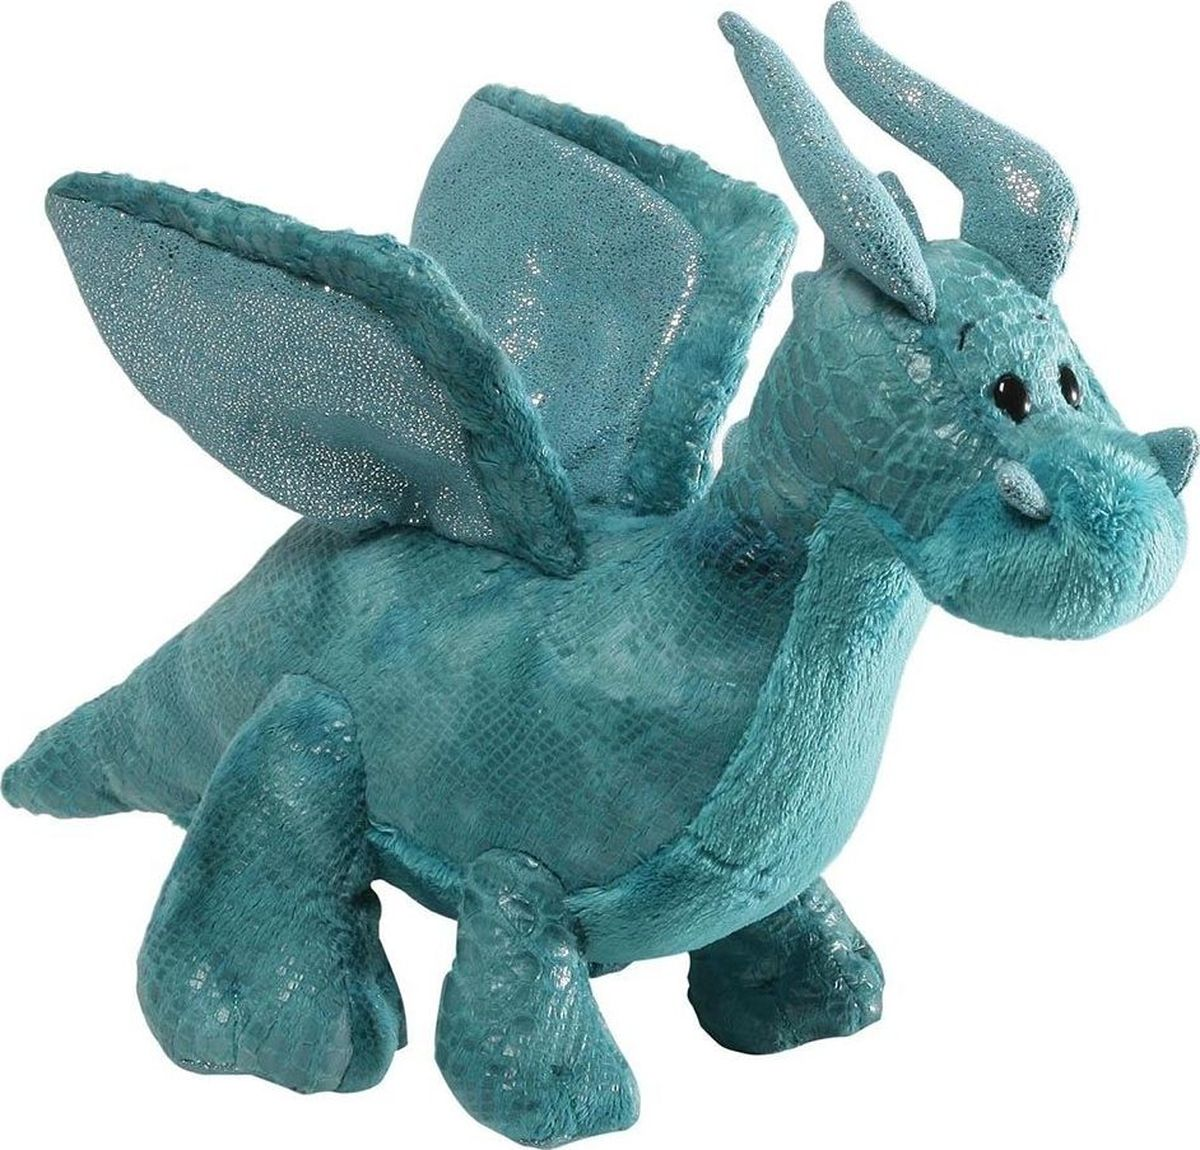 Gund Мягкая игрушка Rubble Teal Dragon 17,5 см gund игрушка мягкая farm свинка со звуком